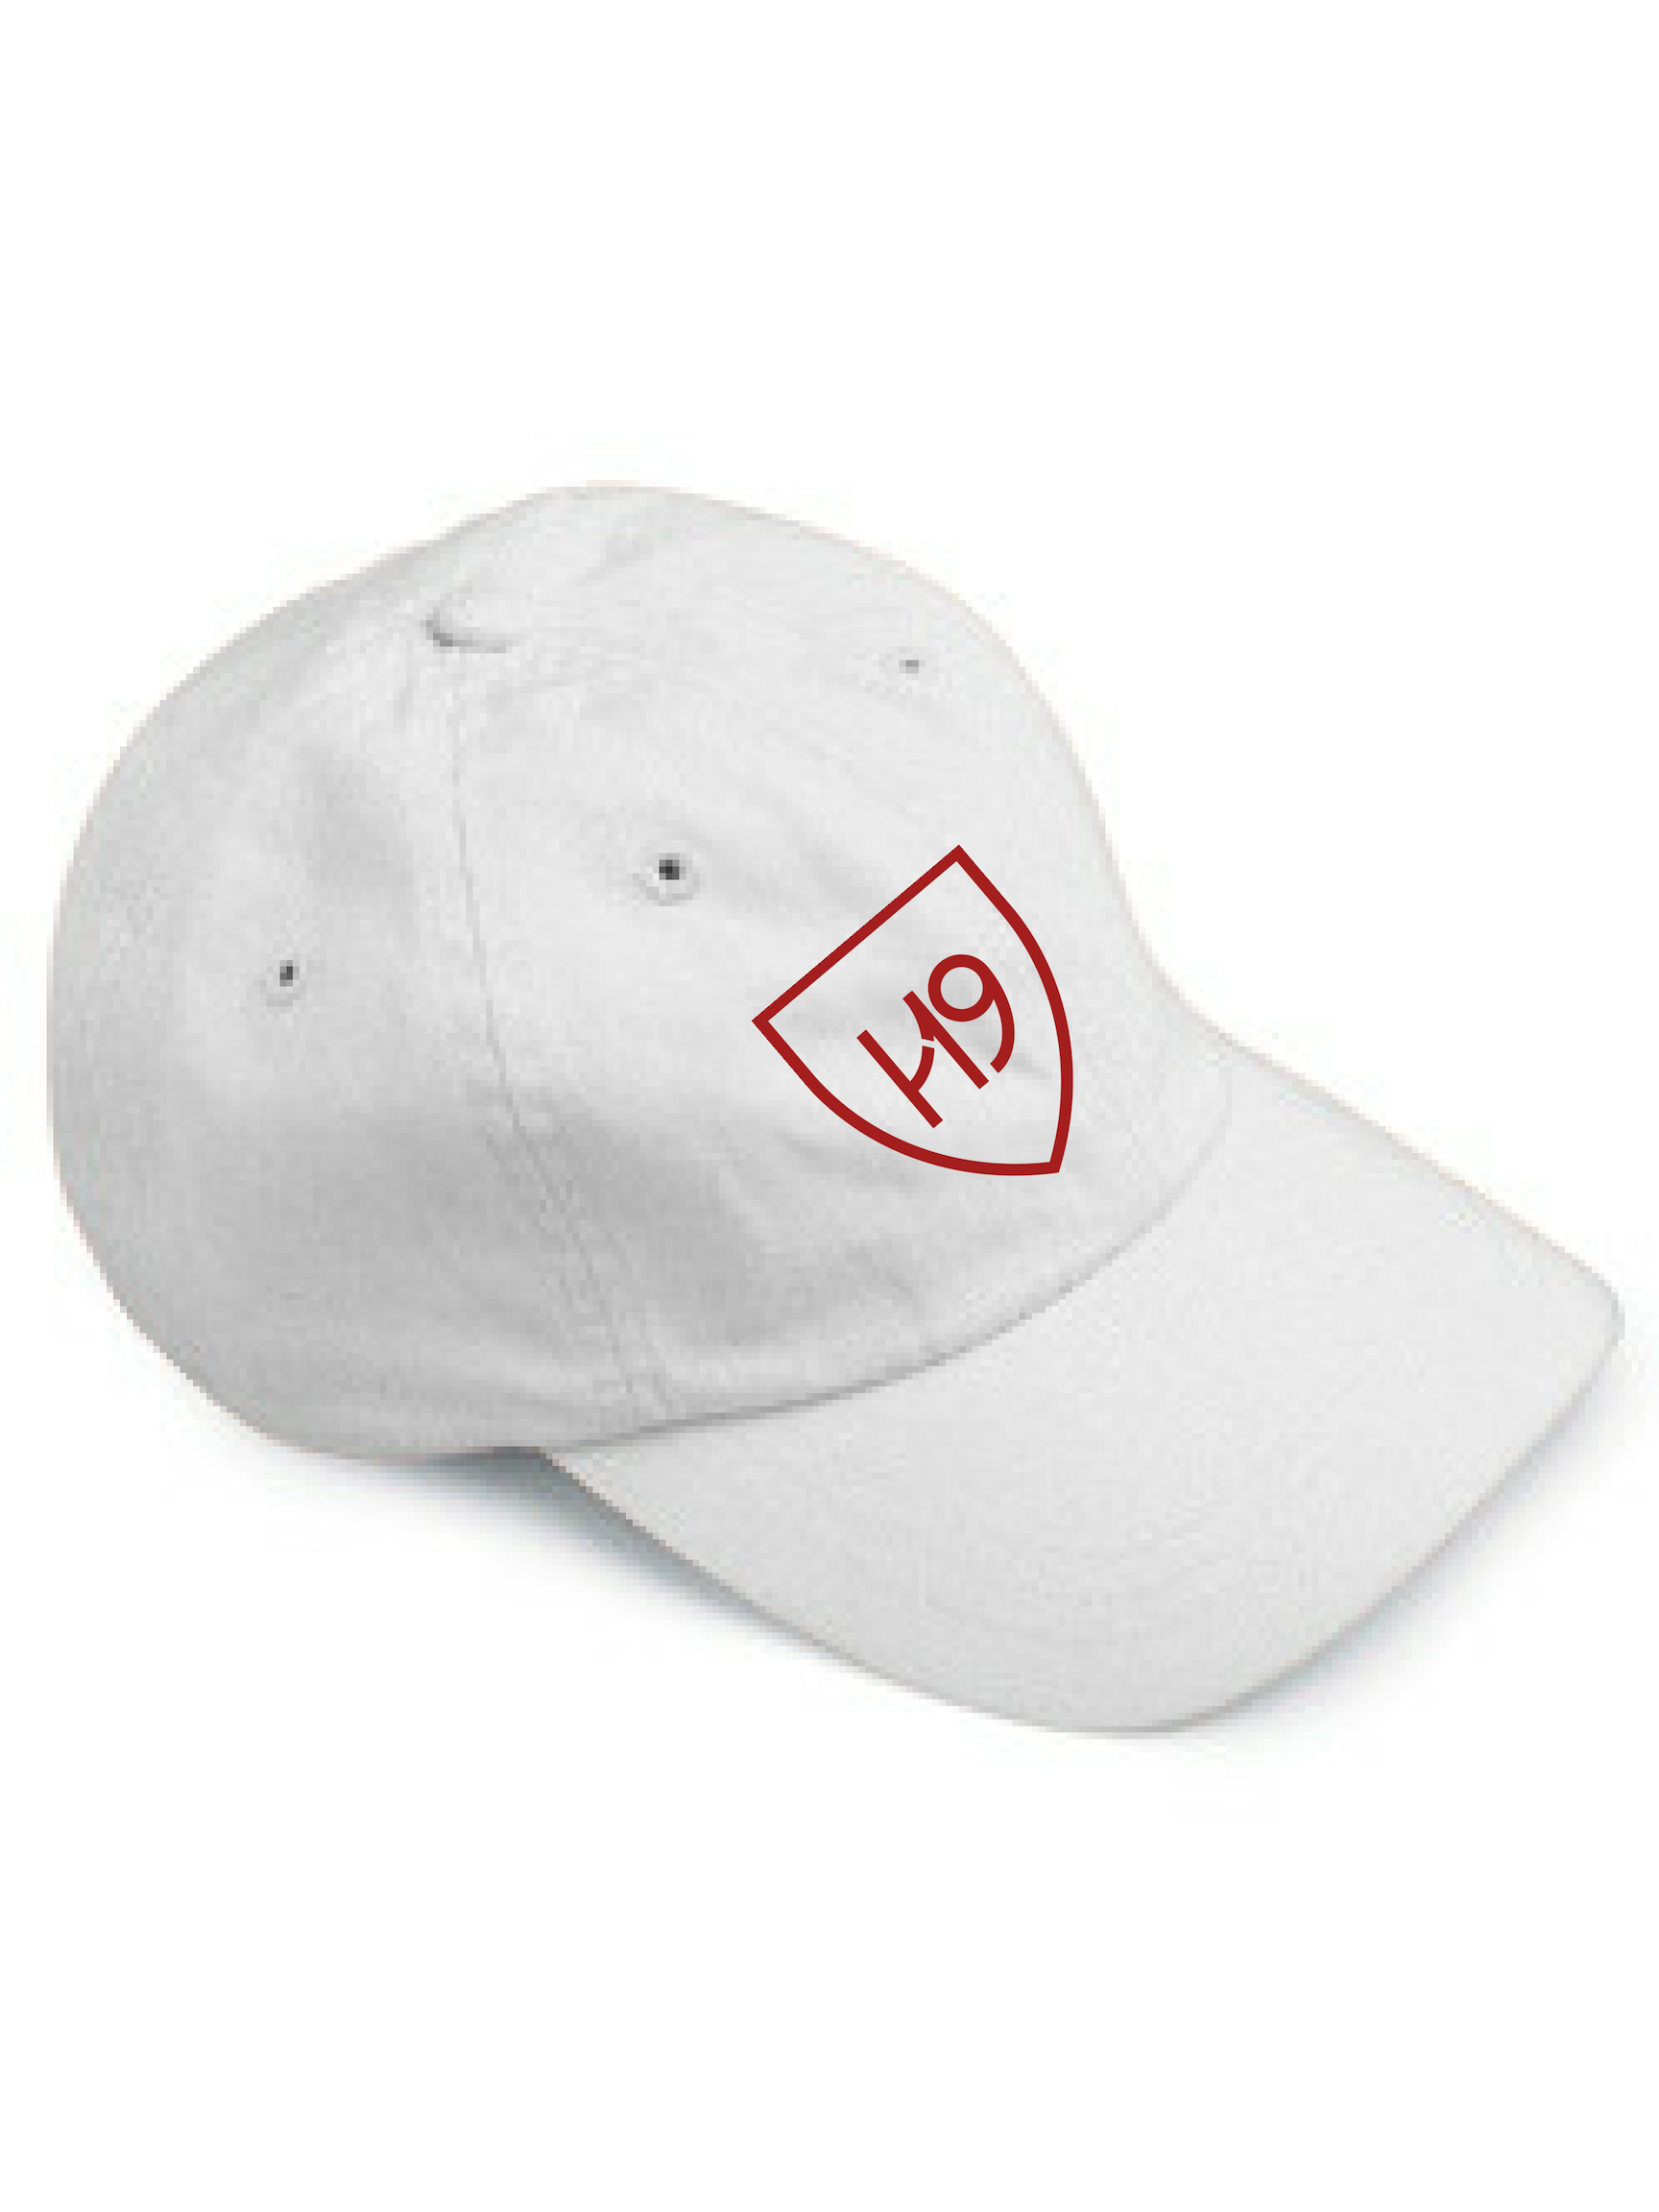 HAT.WHITE.png